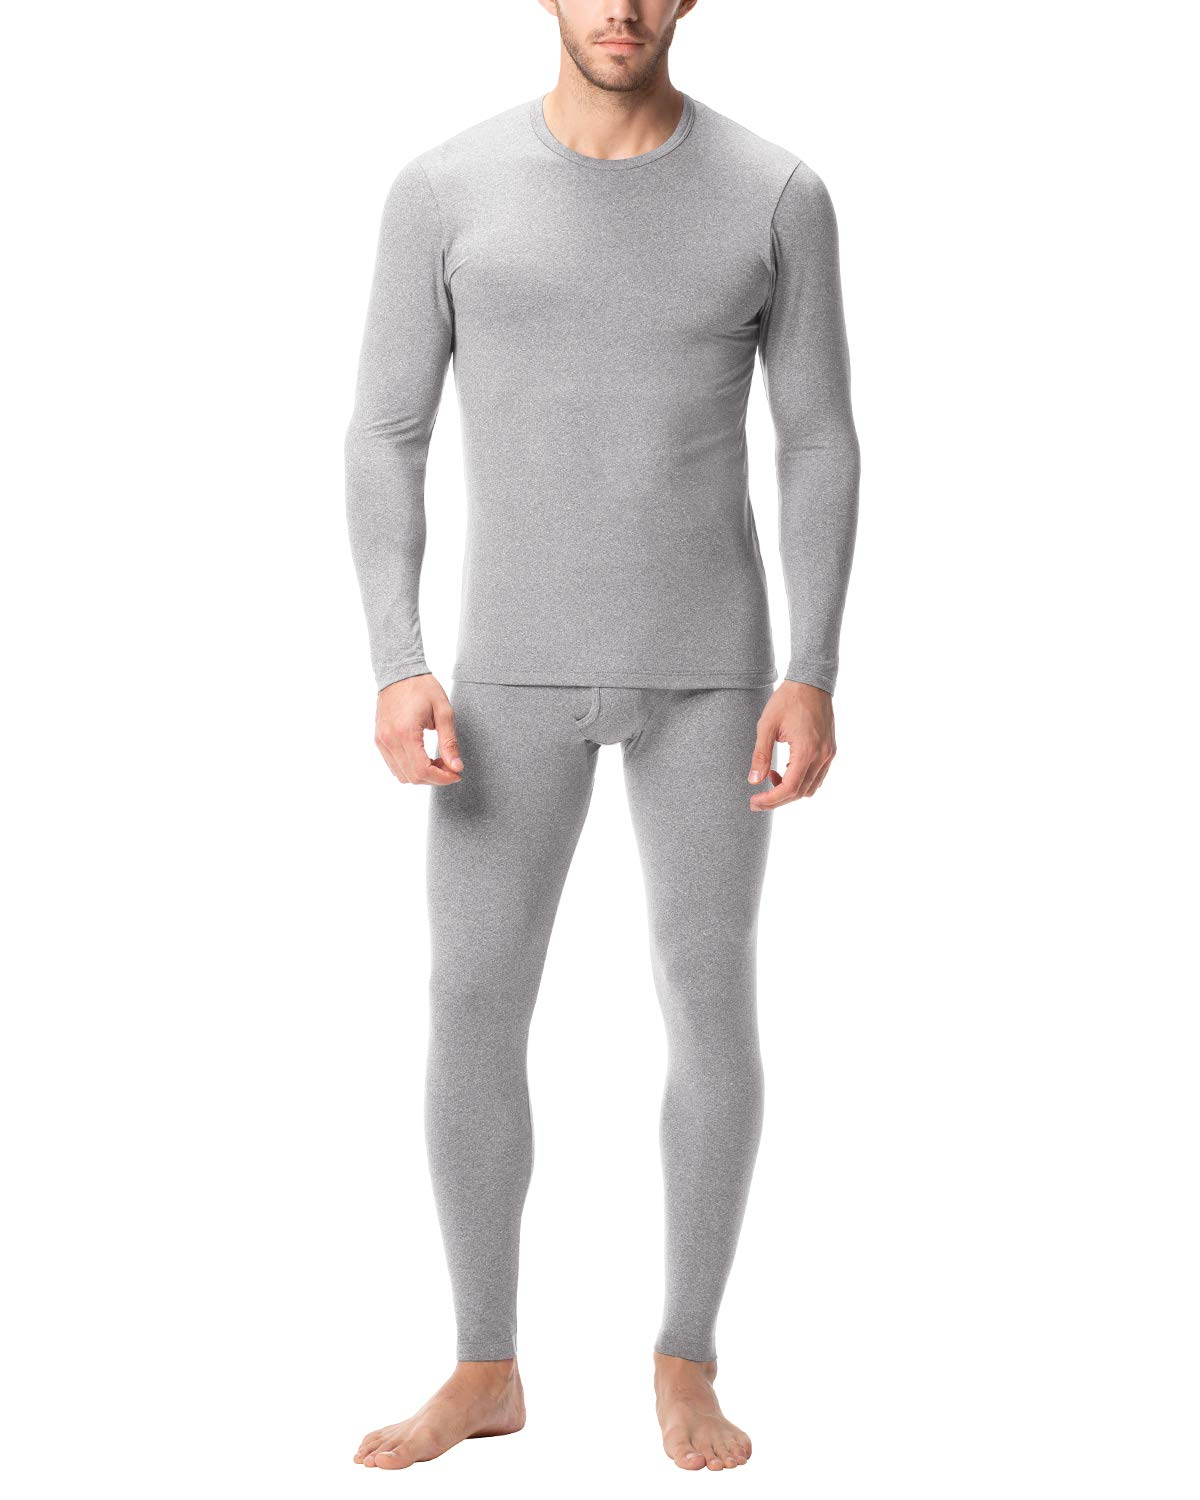 LAPASA Men's Thermal Underwear Long John Set Fleece Lined Base Layer Top and Bottom M11 (Small, Midweight Grey) by LAPASA